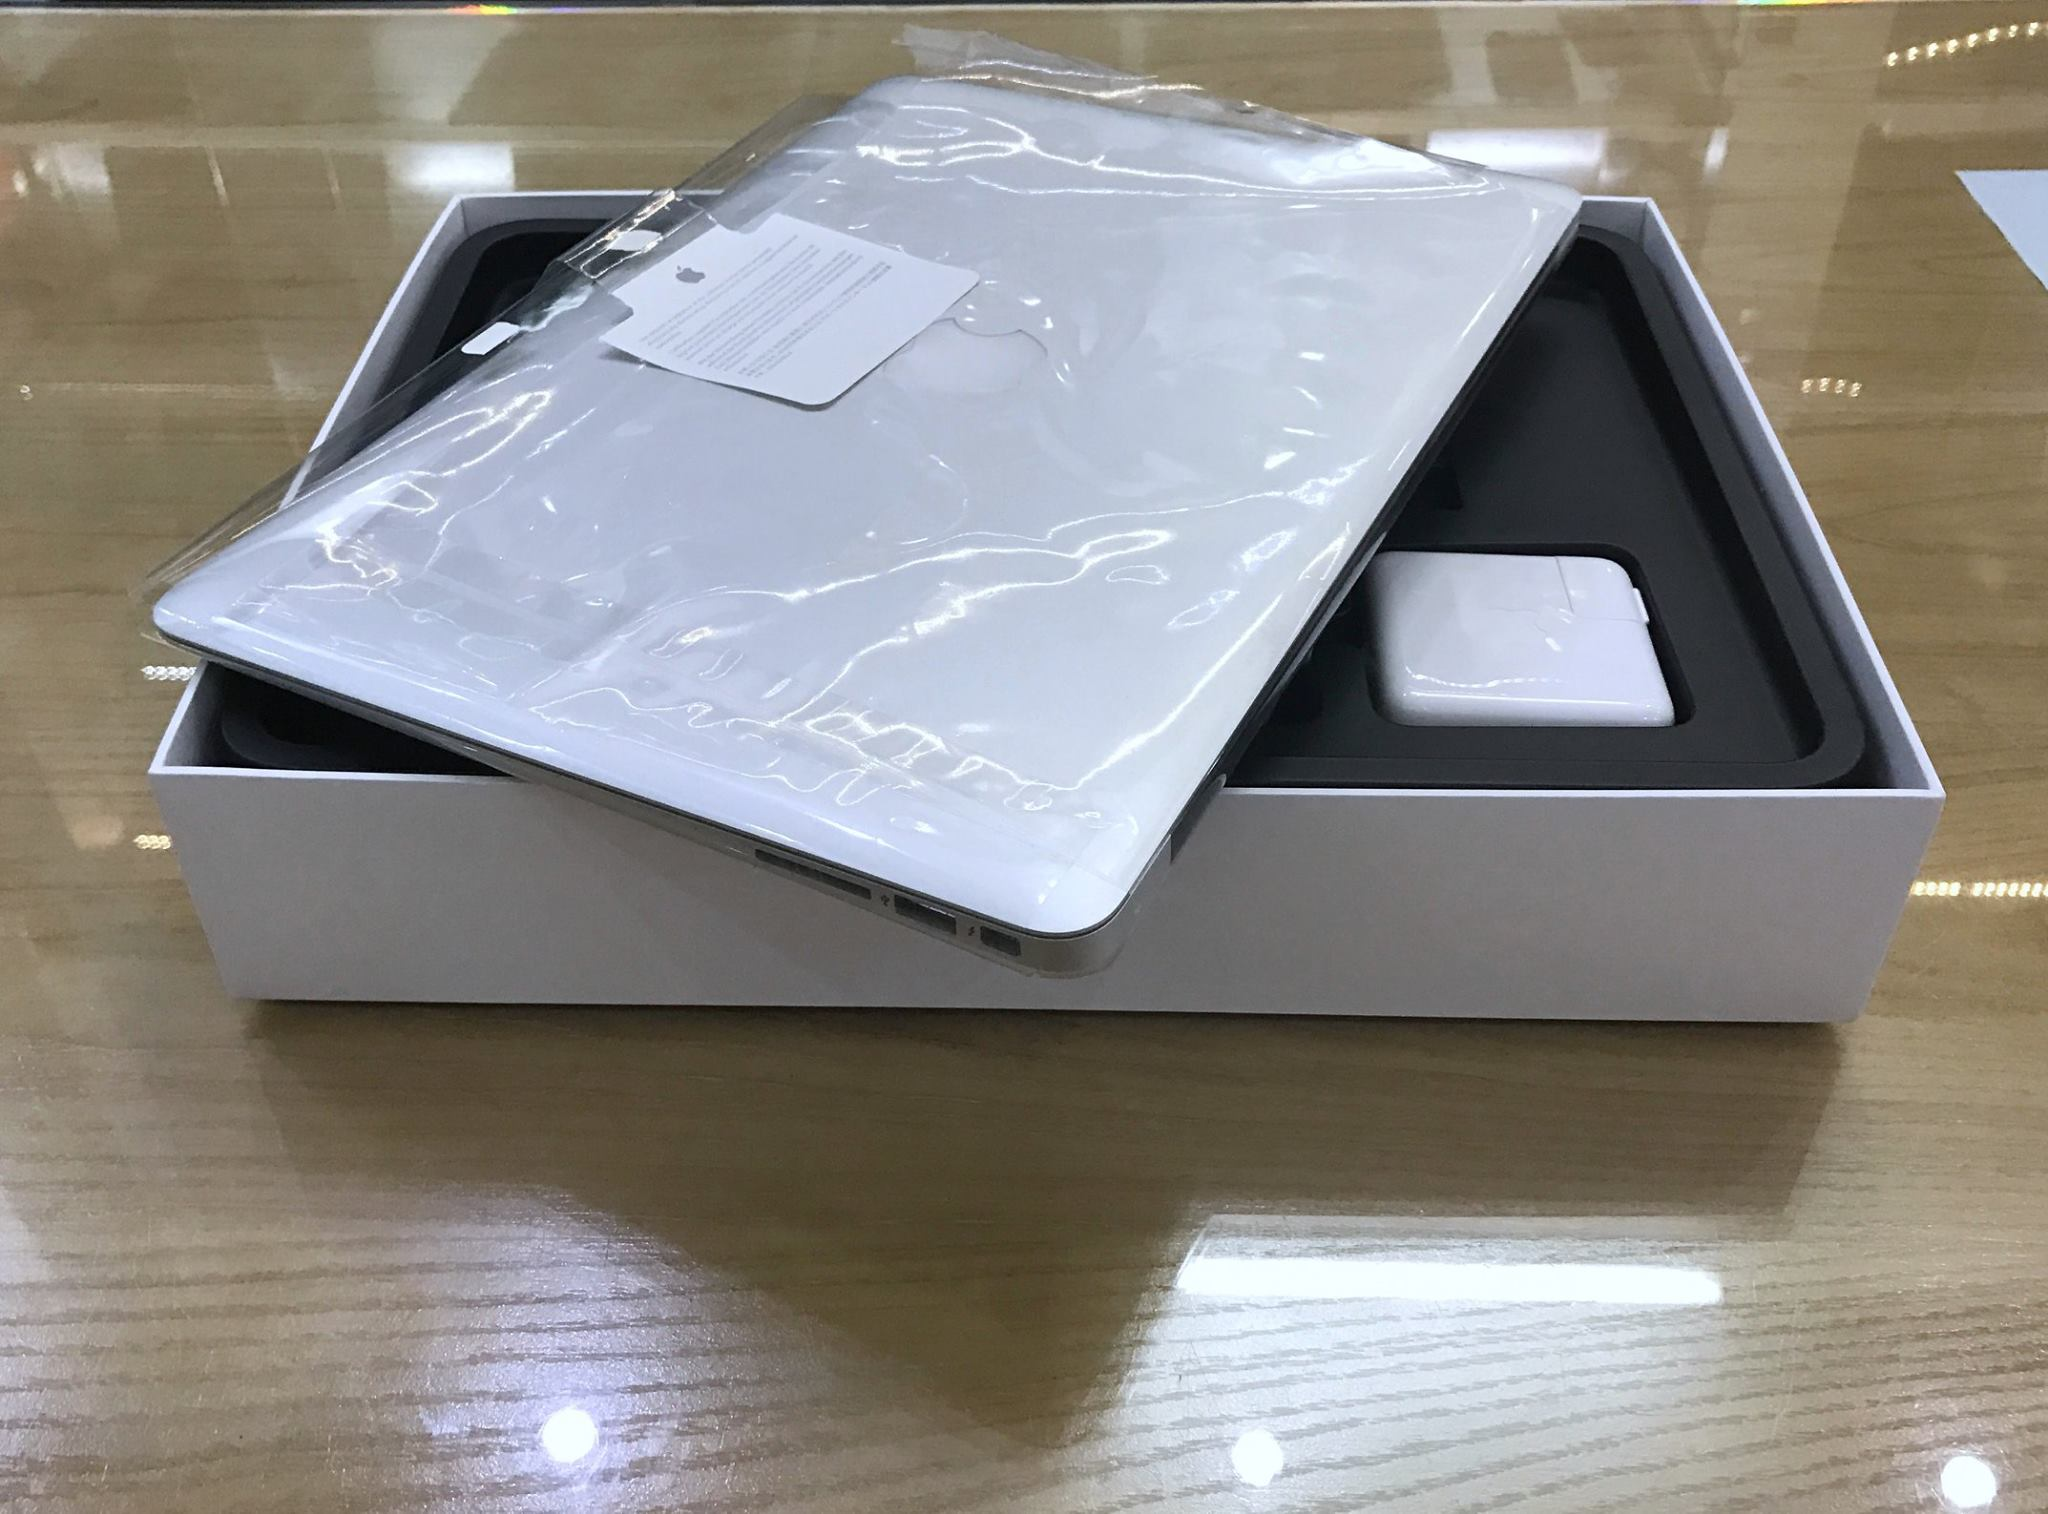 Macbook air MMGG2 2016 -9.jpg